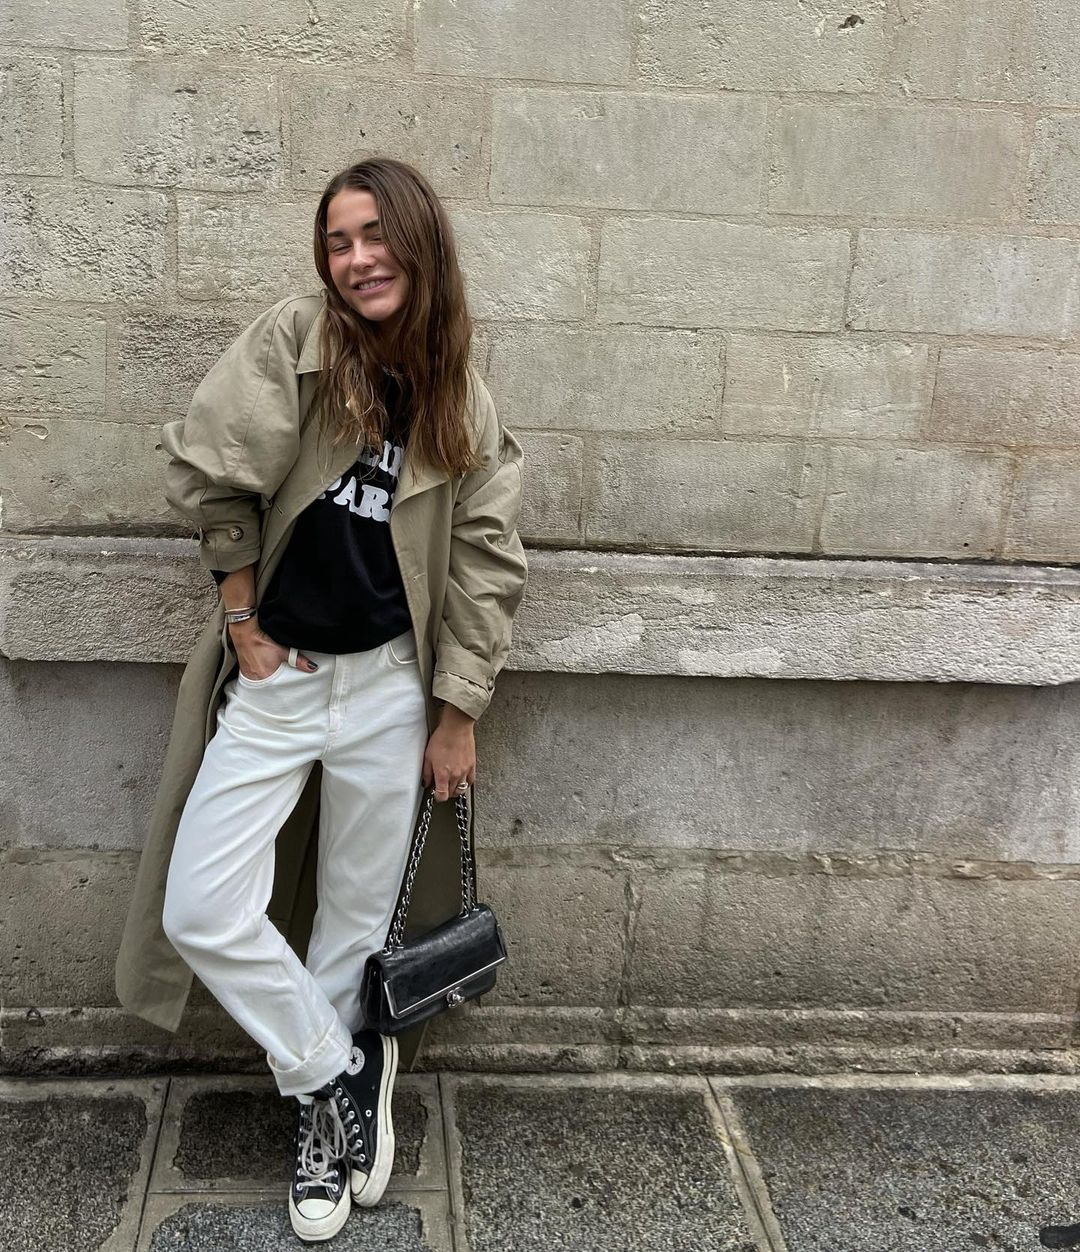 sophia-roe-les-coyotes-de-paris-ruby-trench-coat-instagram